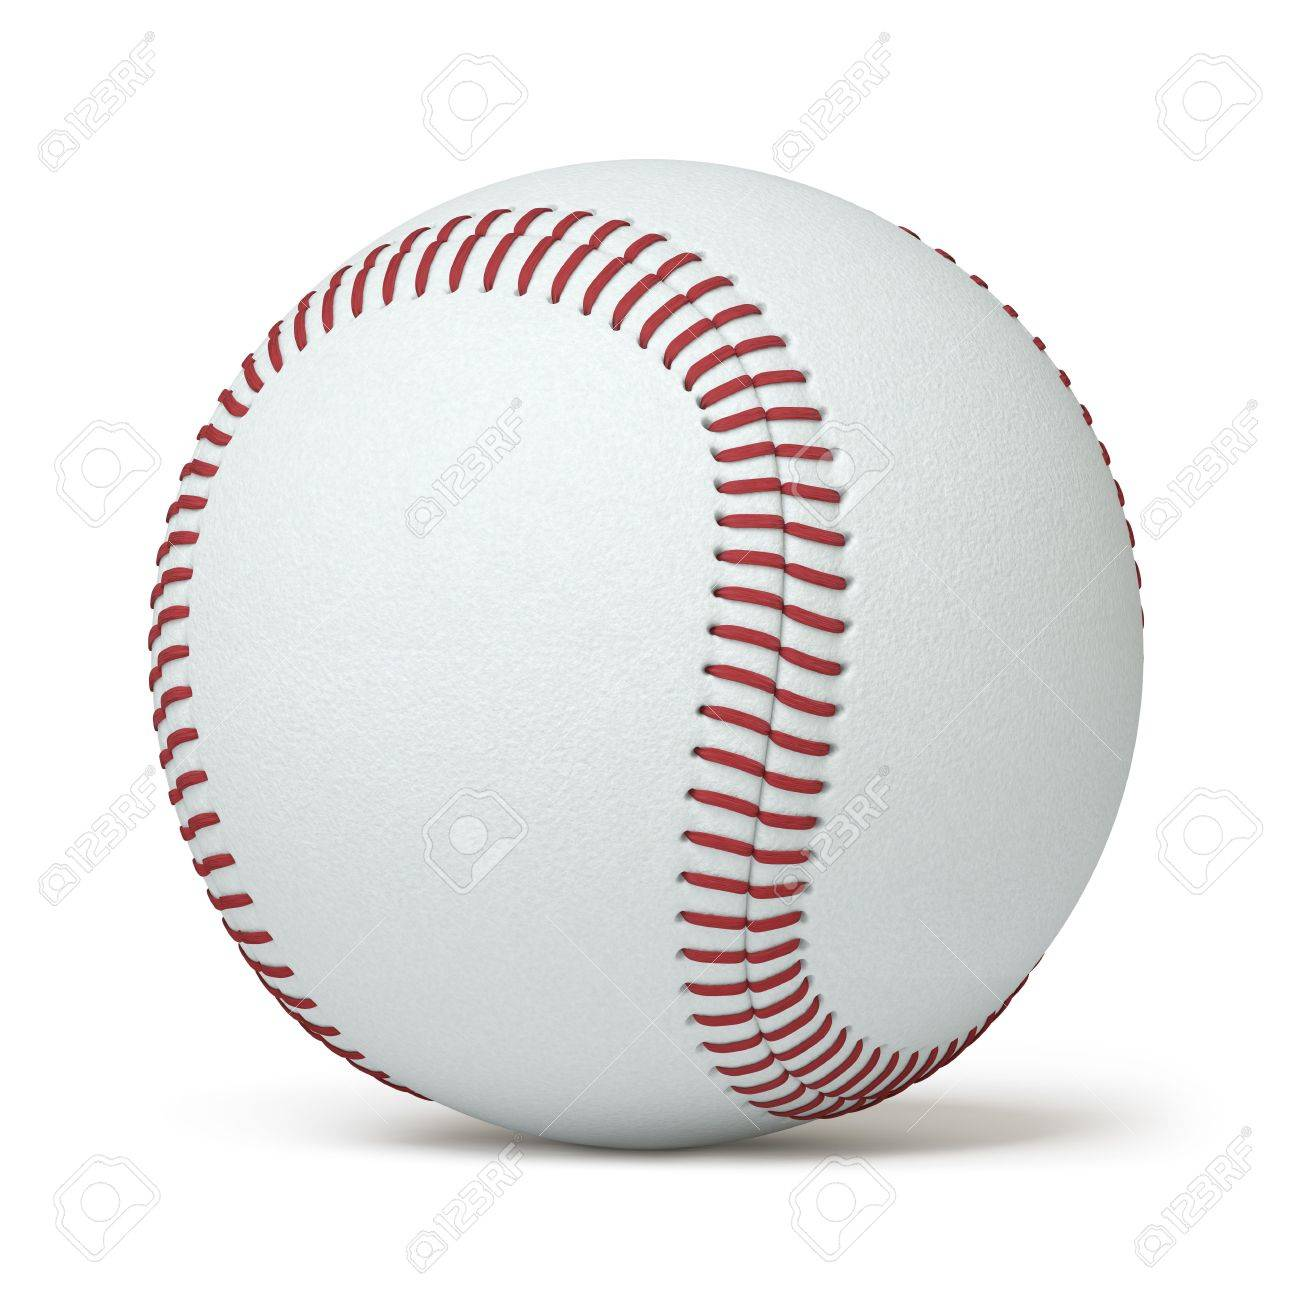 baseball Stock Photo - 6699497